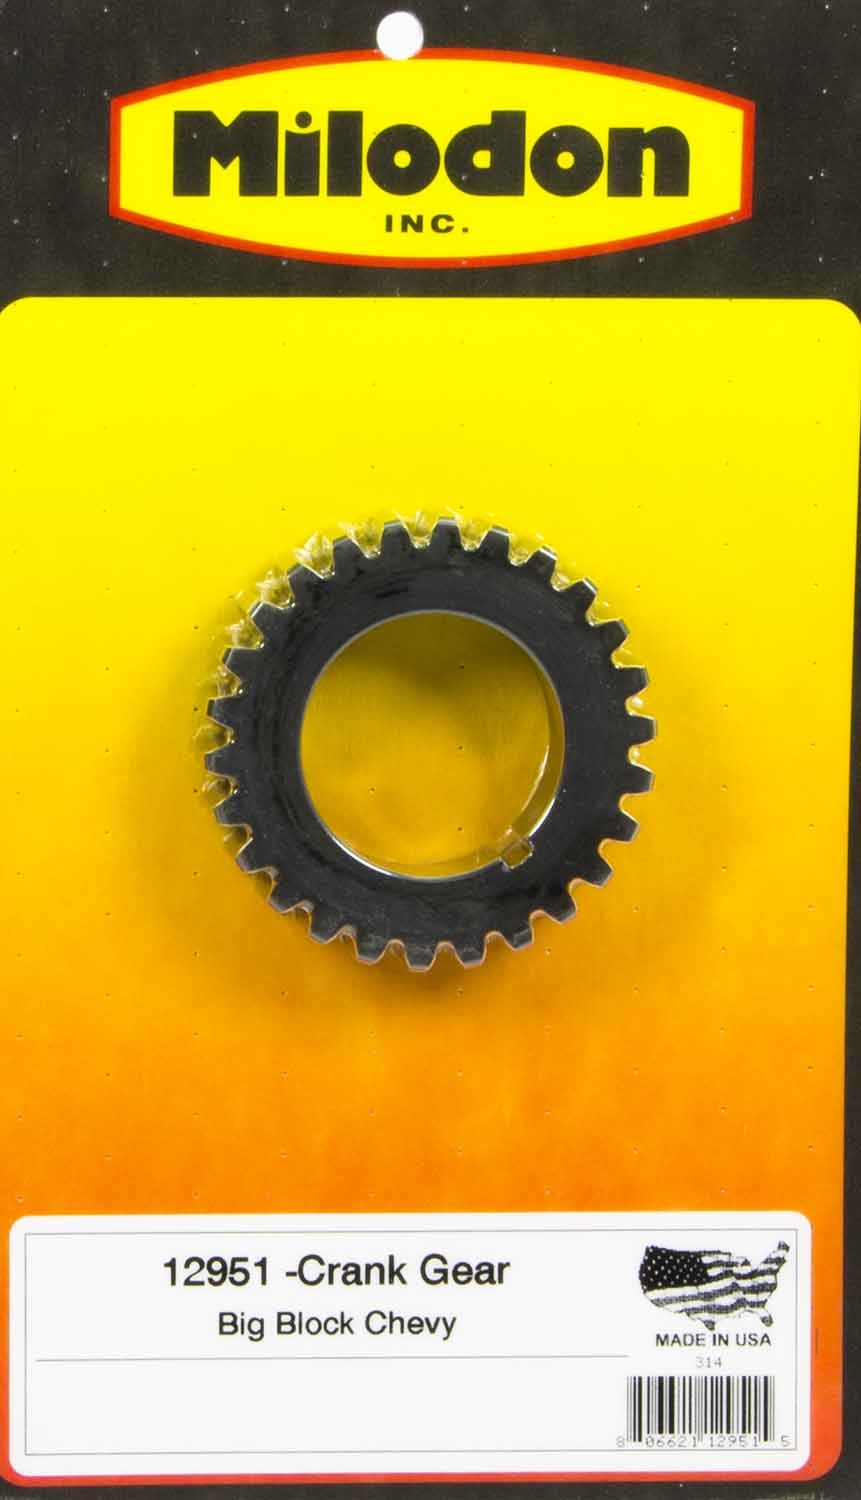 Milodon 12951 Timing Crank Gear, Billet Steel, Milodon Gear Drive, Big Block Chevy, Each